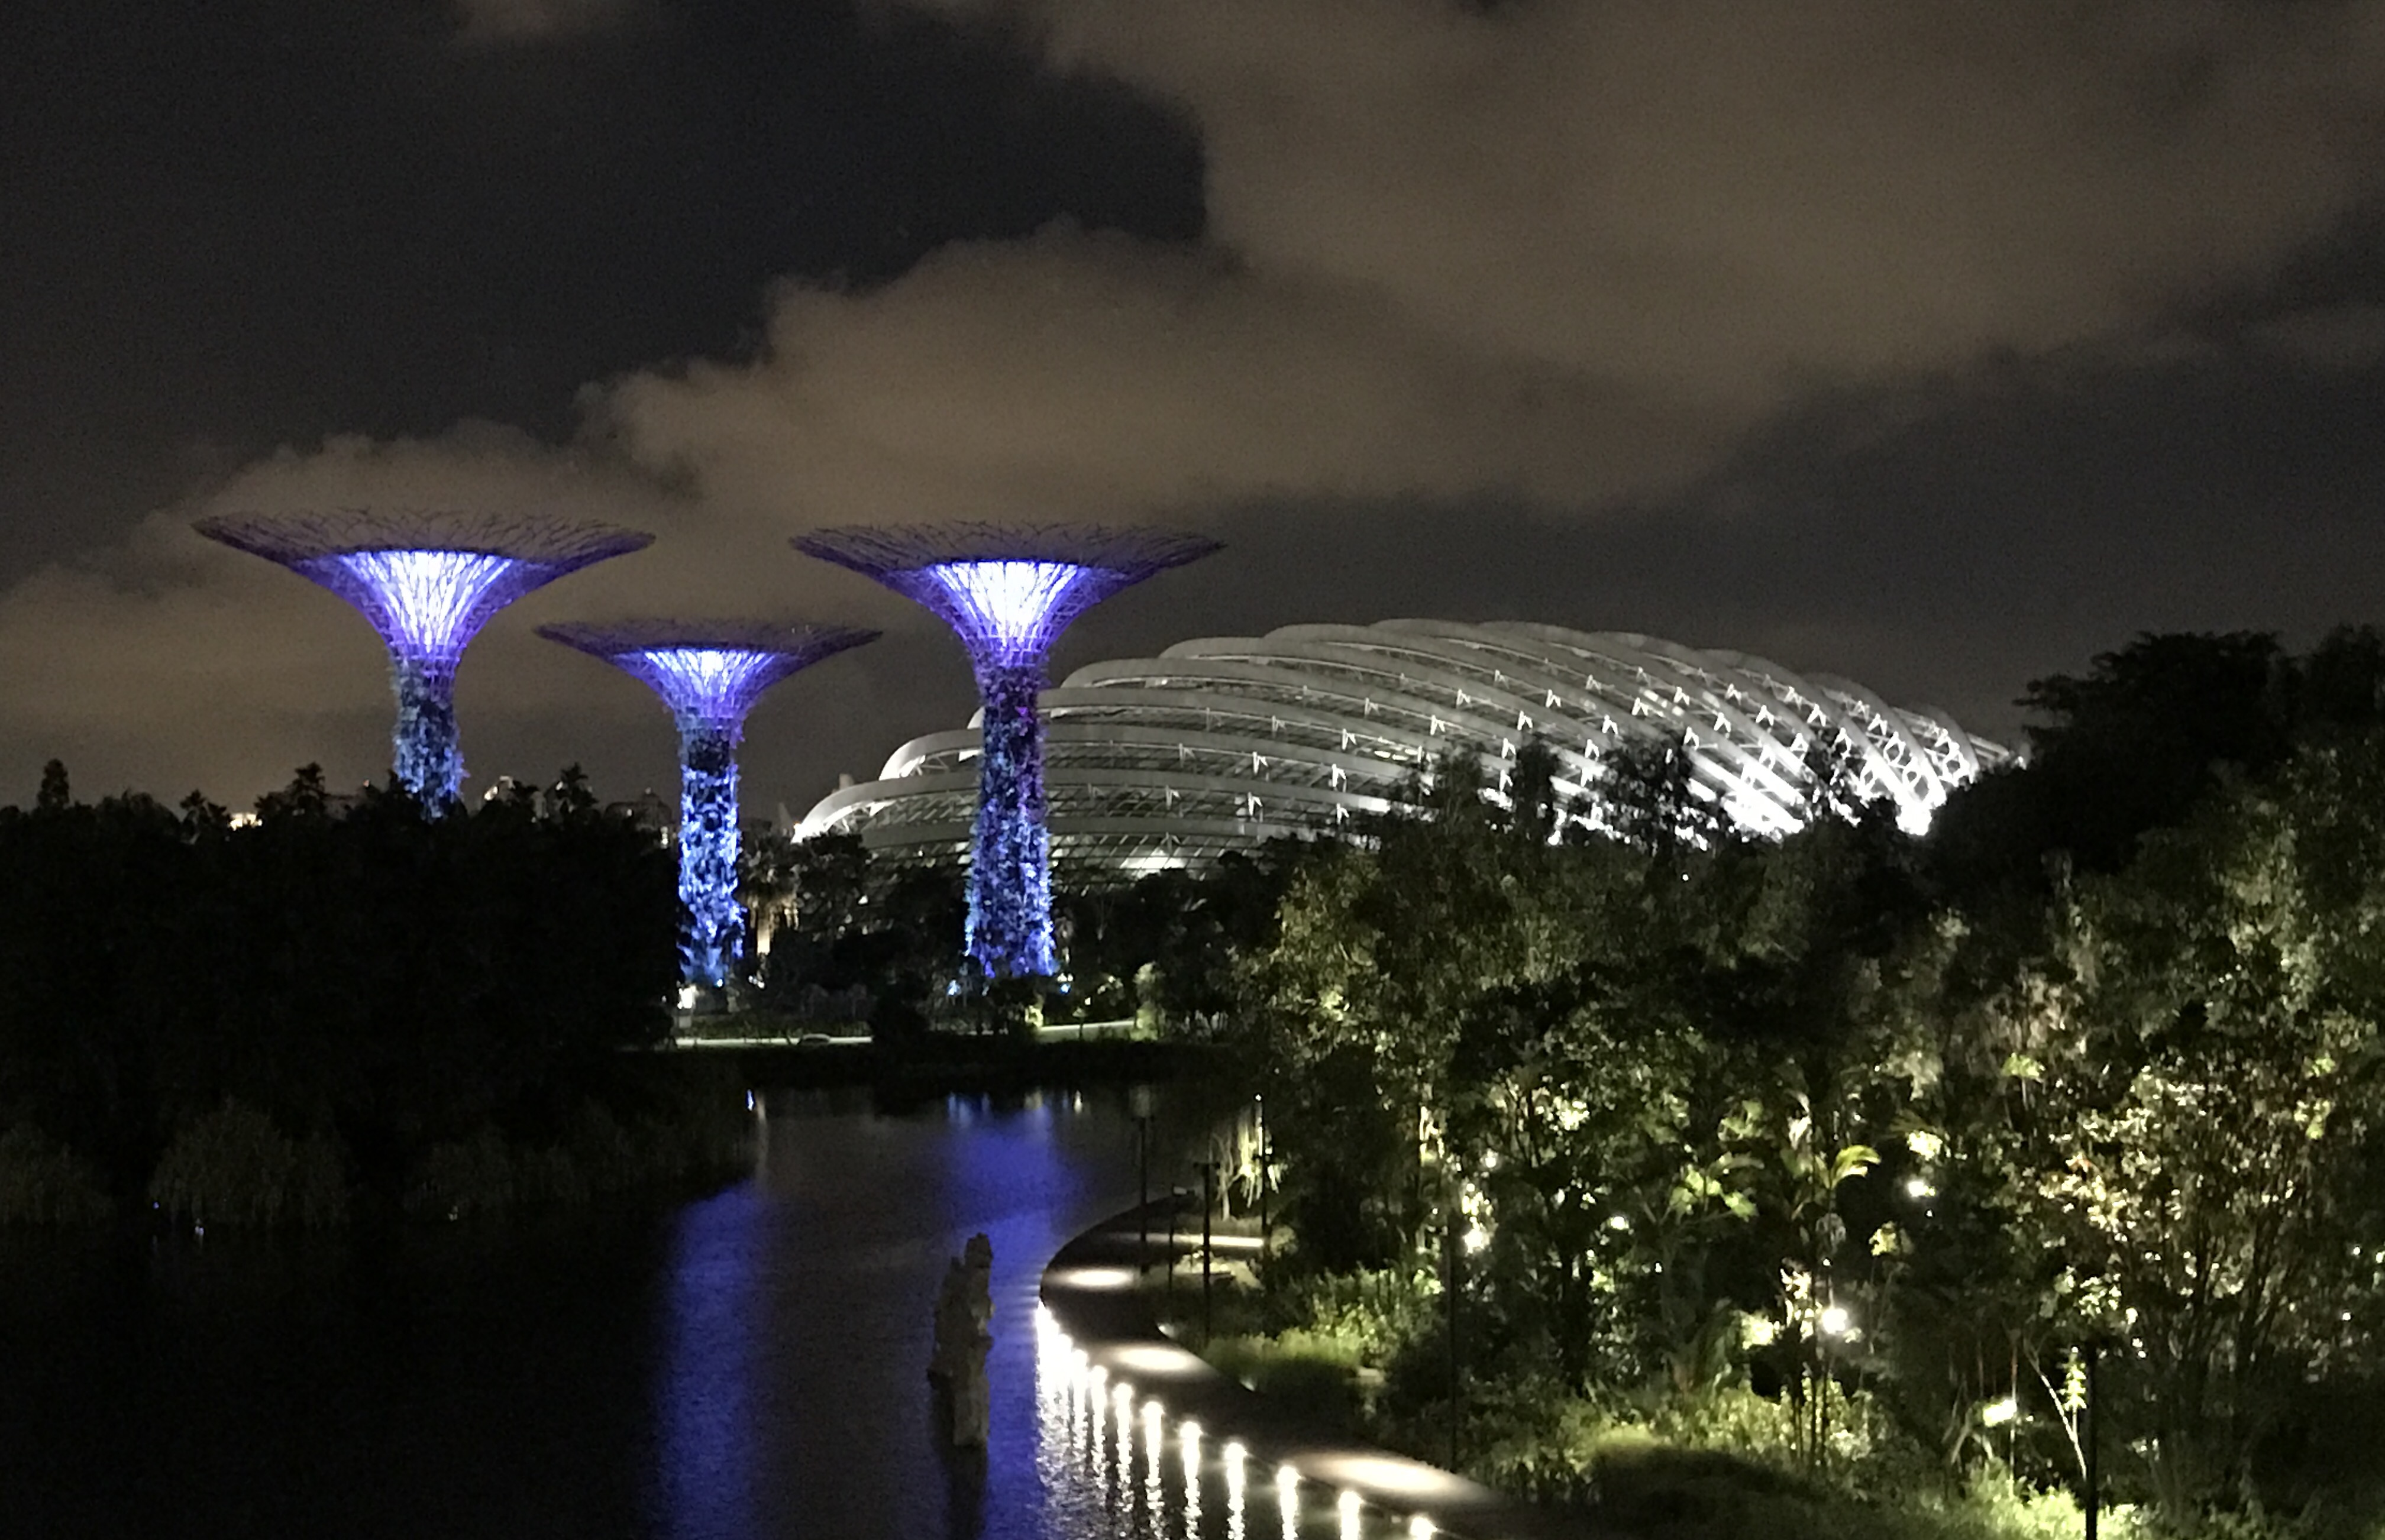 Singapore's Garden by the Bay